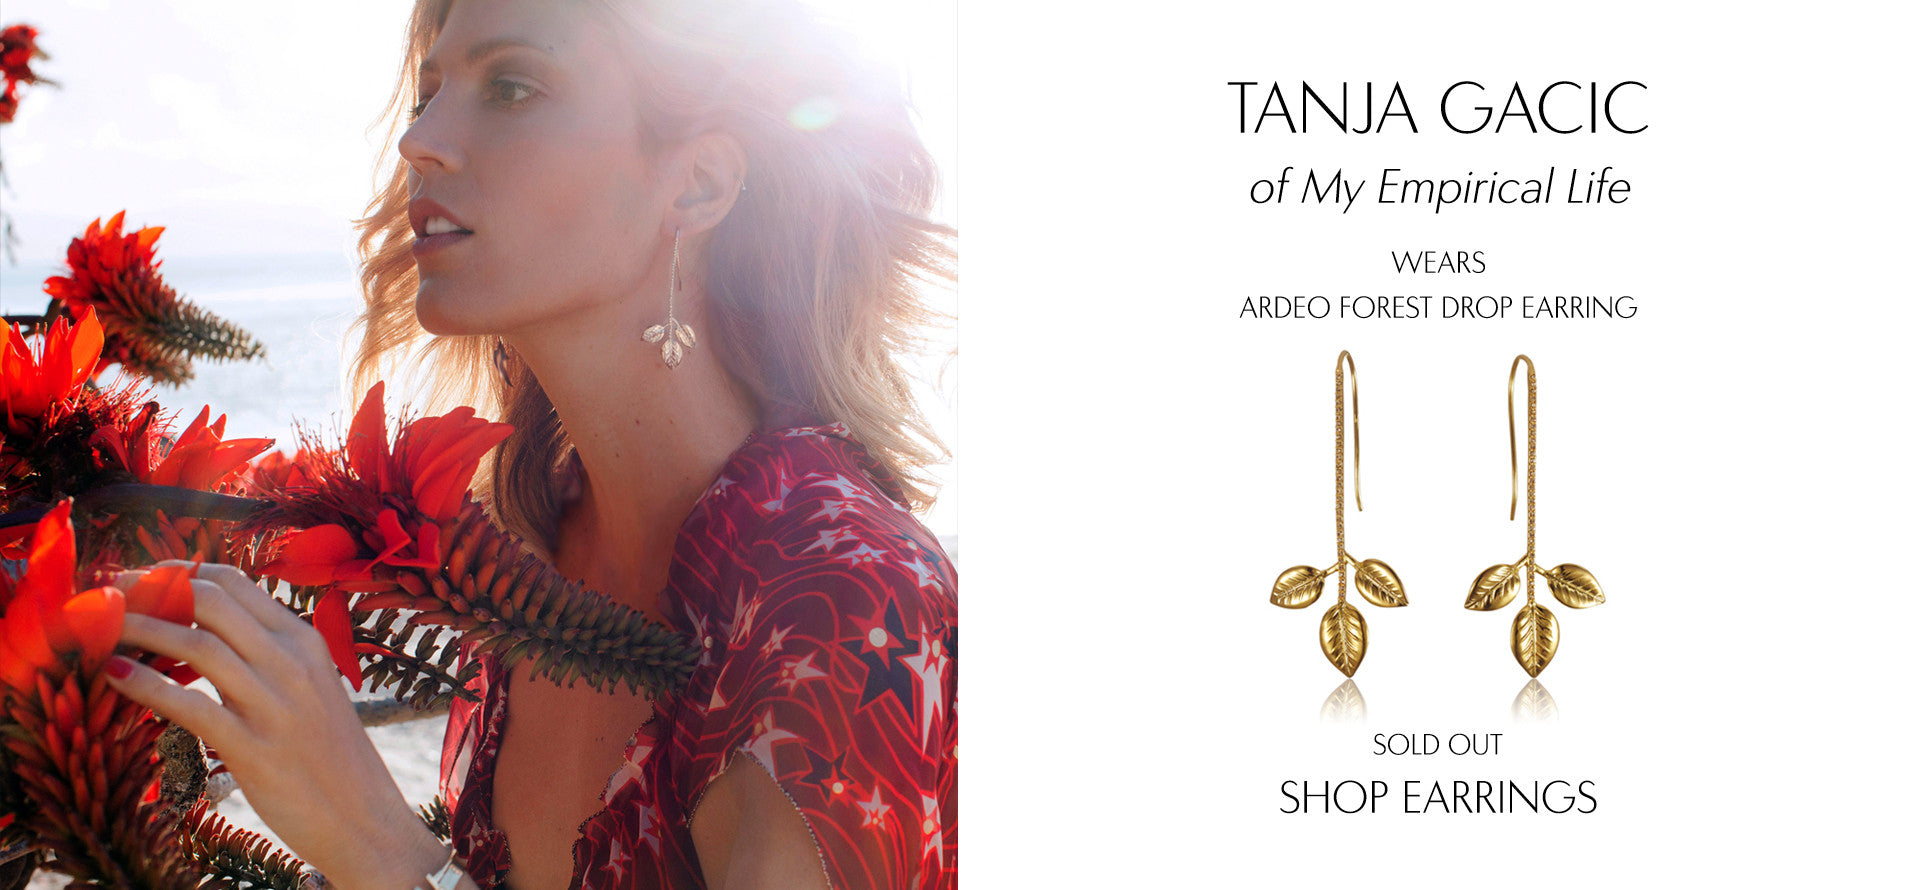 My Empirical Life - Fashion Blog by Tanja Gacic wears Sarina Suriano Ardeo Forest gold drop earring